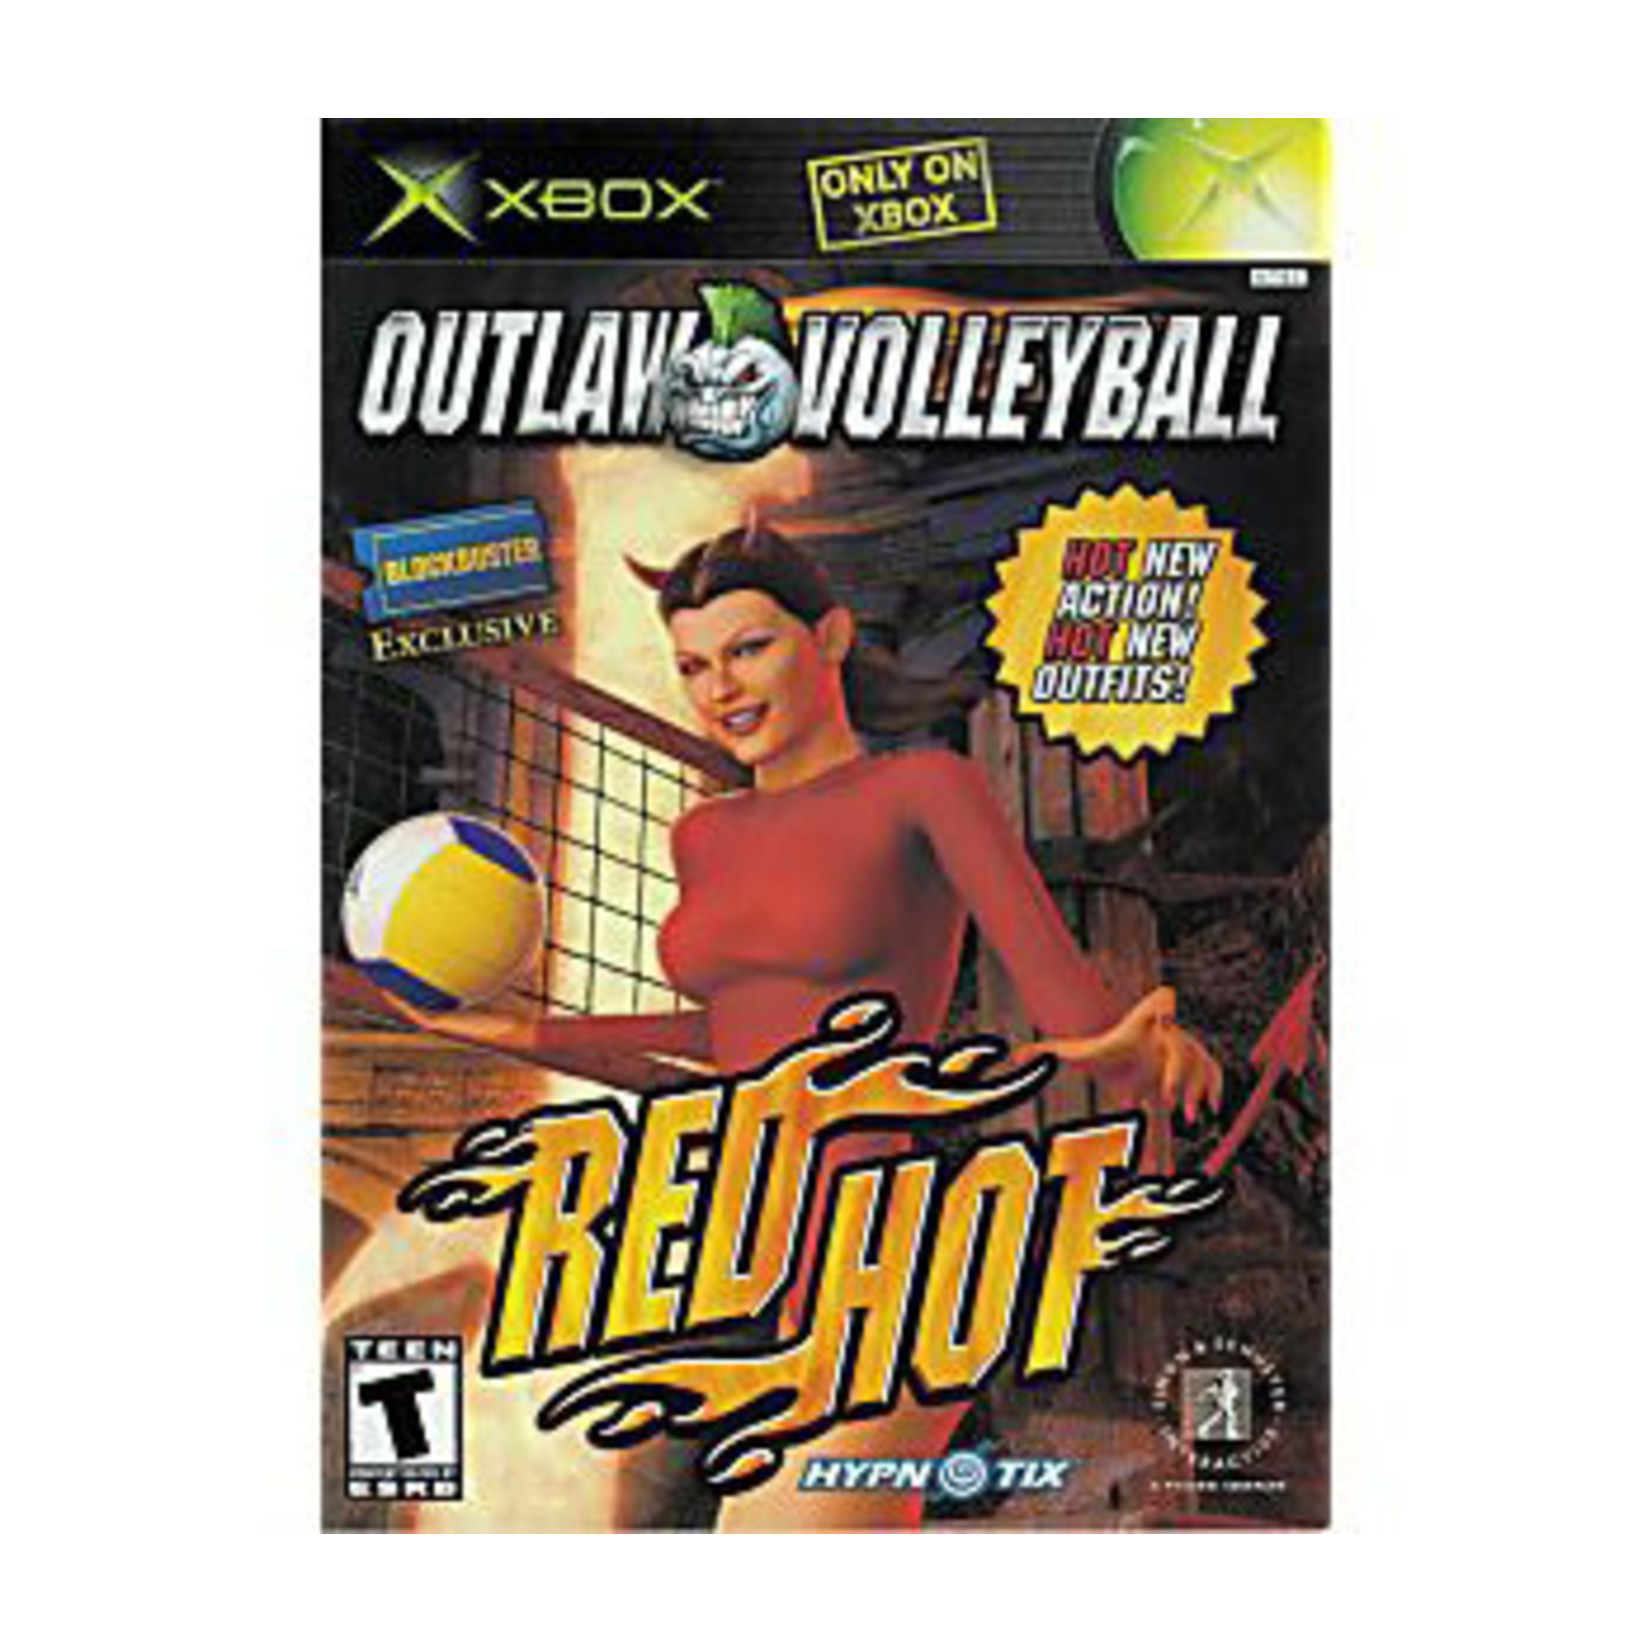 XBU-OUTLAW VOLLYBALL RED HOT